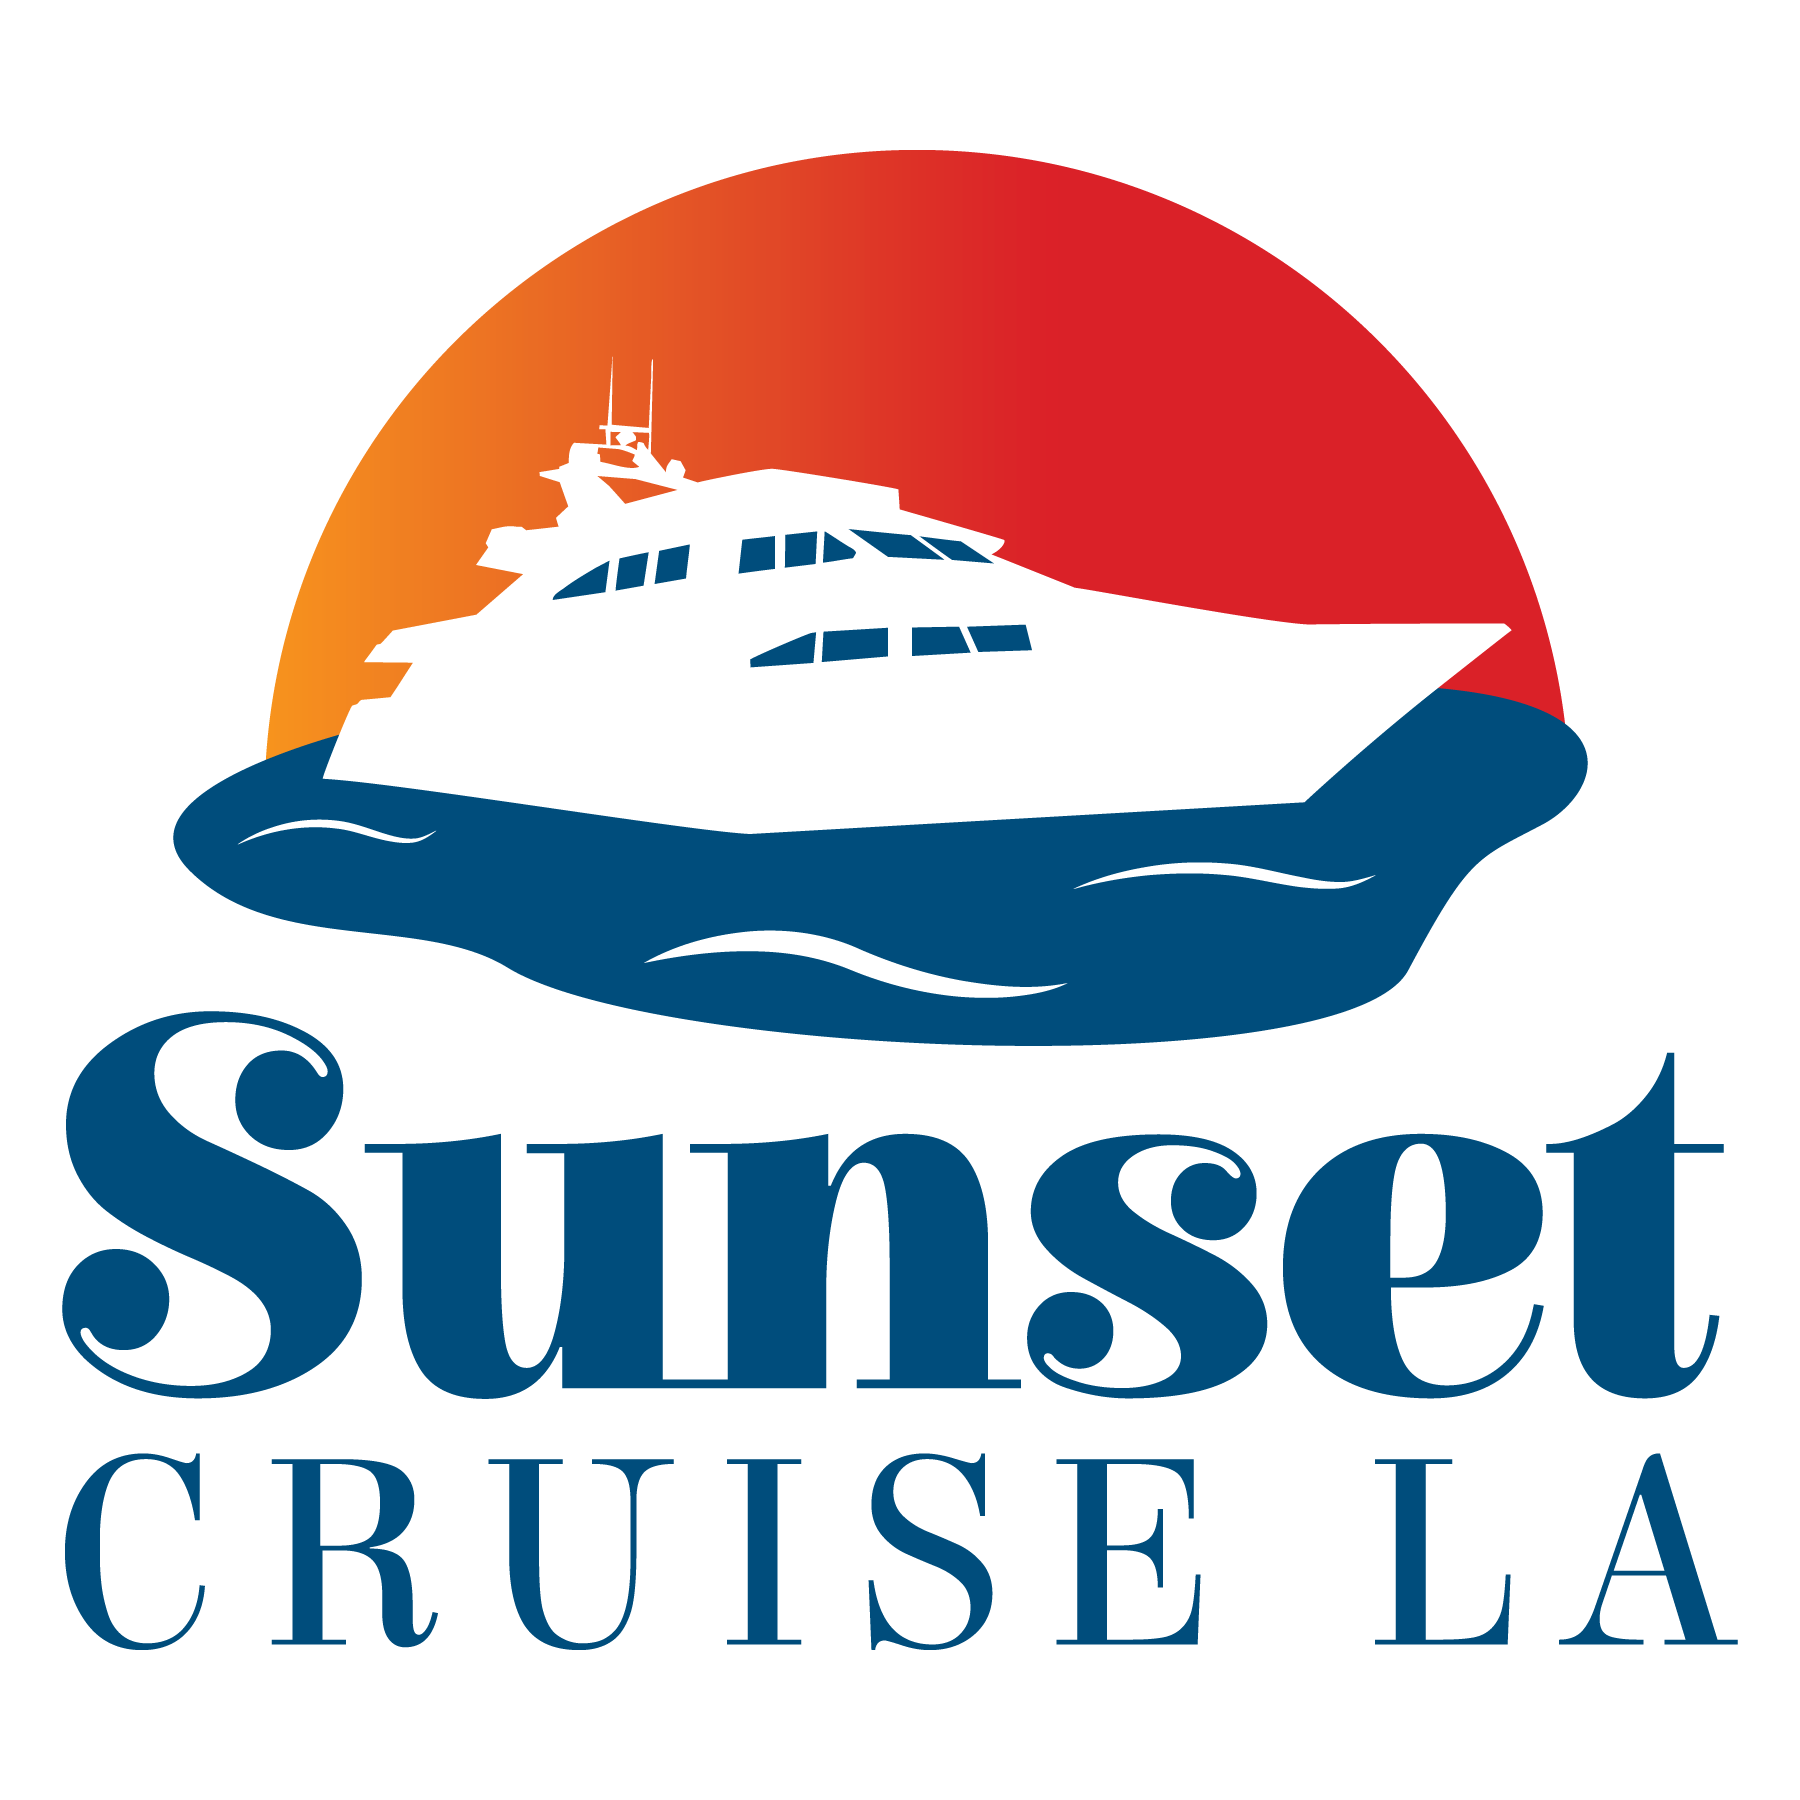 36266192_SunsetCruiseLA_Final